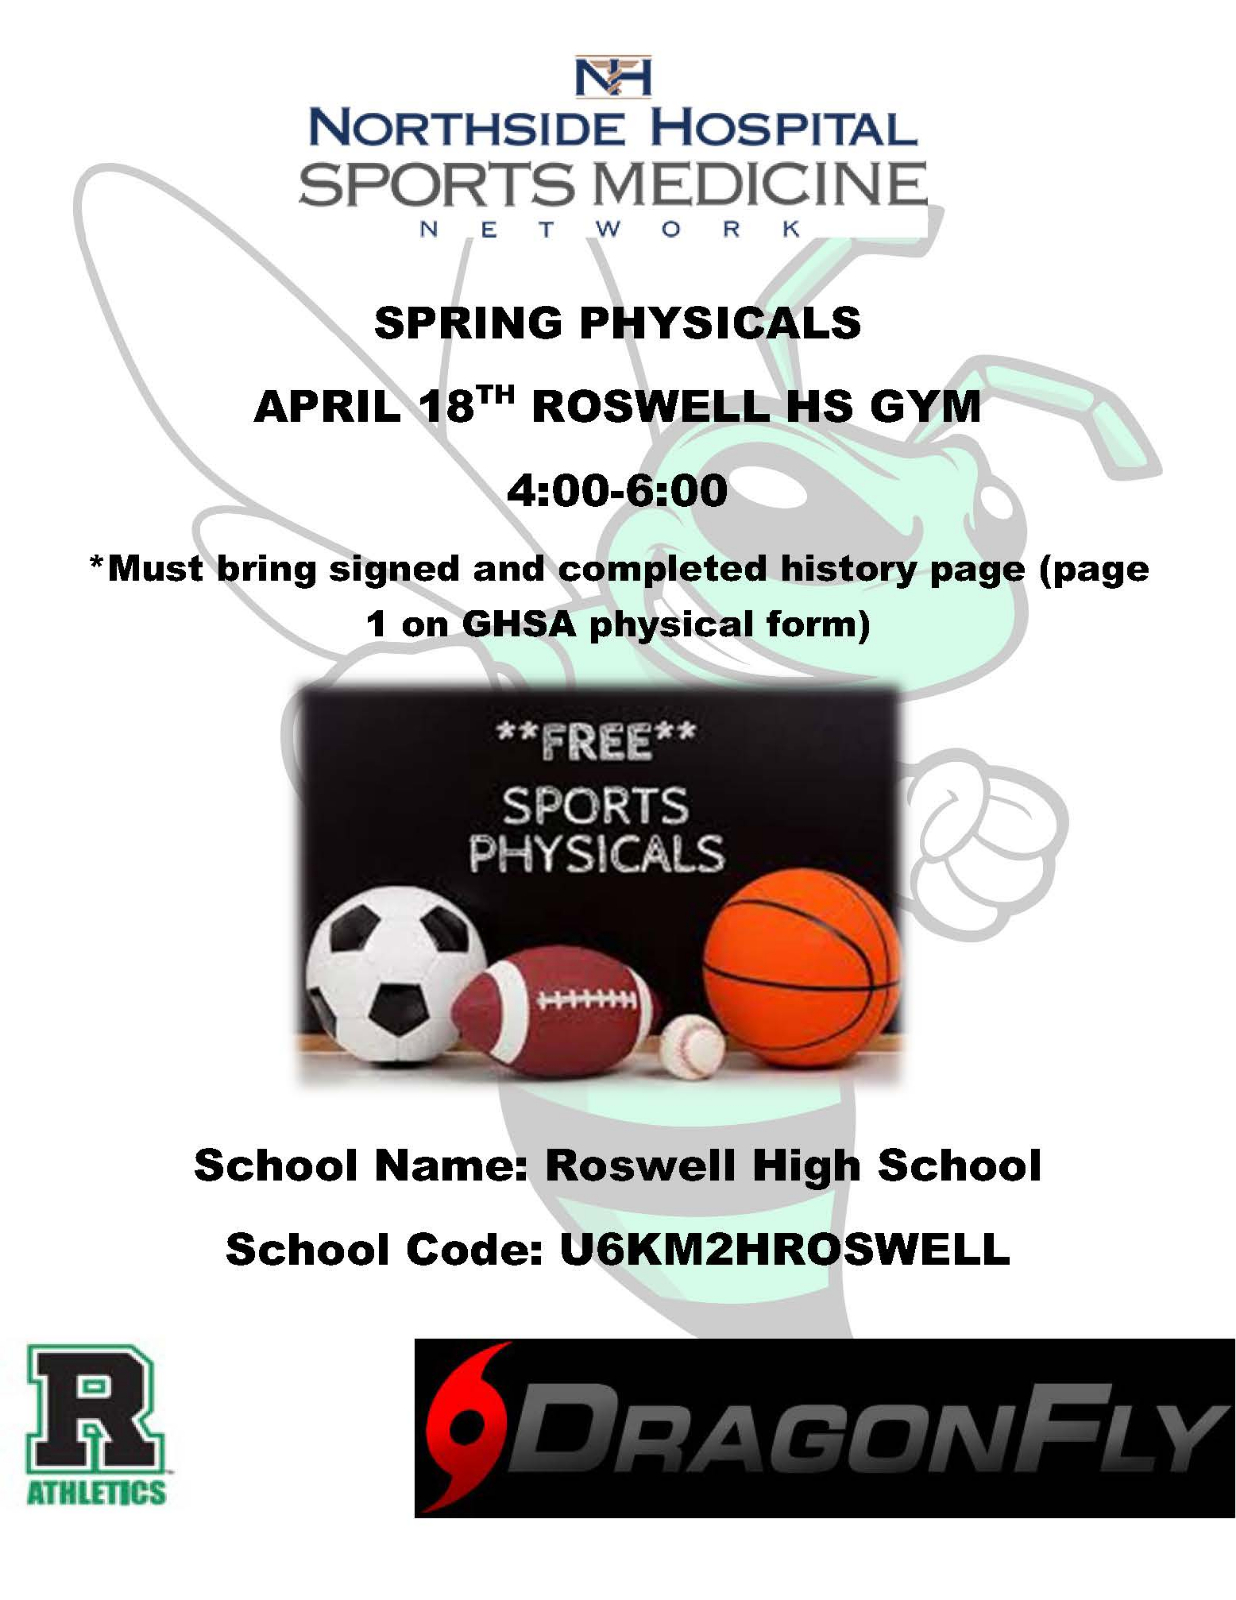 Free Physicals April 18th @ Roswell